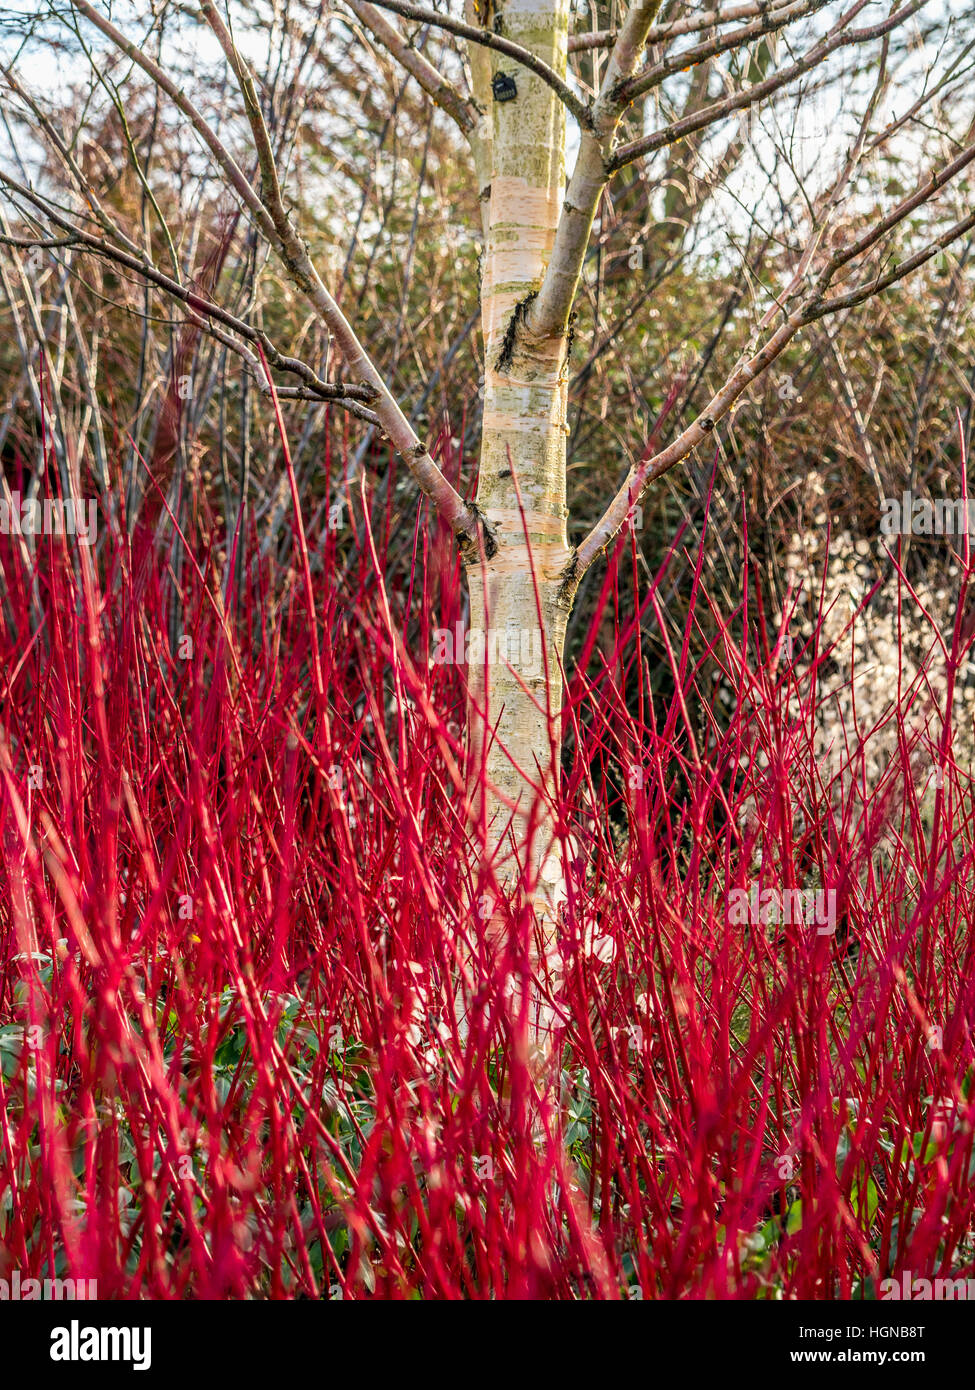 Cornus sanguinea 'Midwinter Fire' red winter stems and Silver birch tree in garde - Stock Image